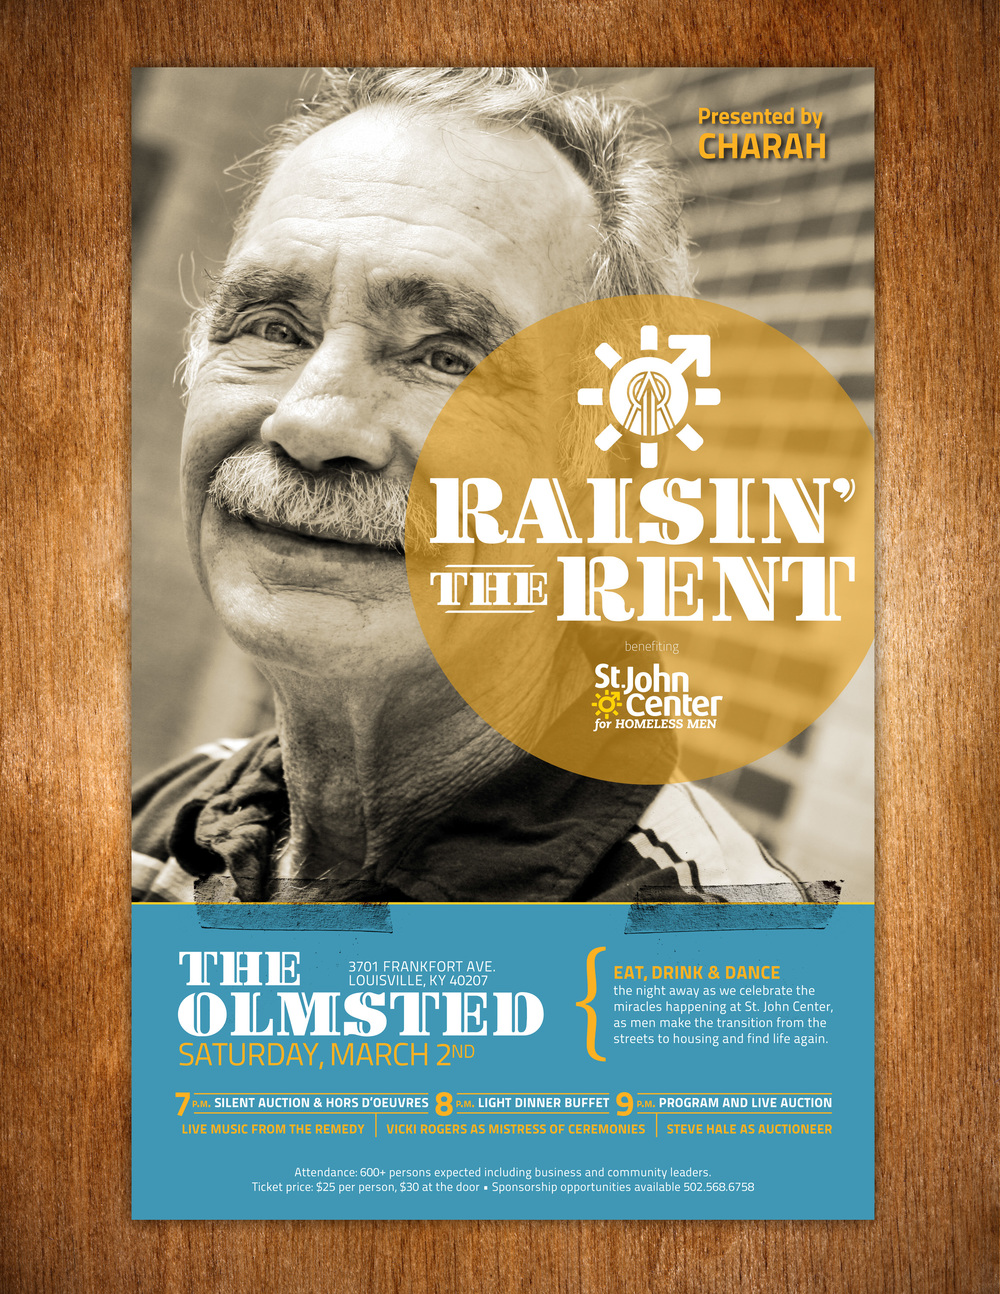 St. John Center: Raisin' the Rent